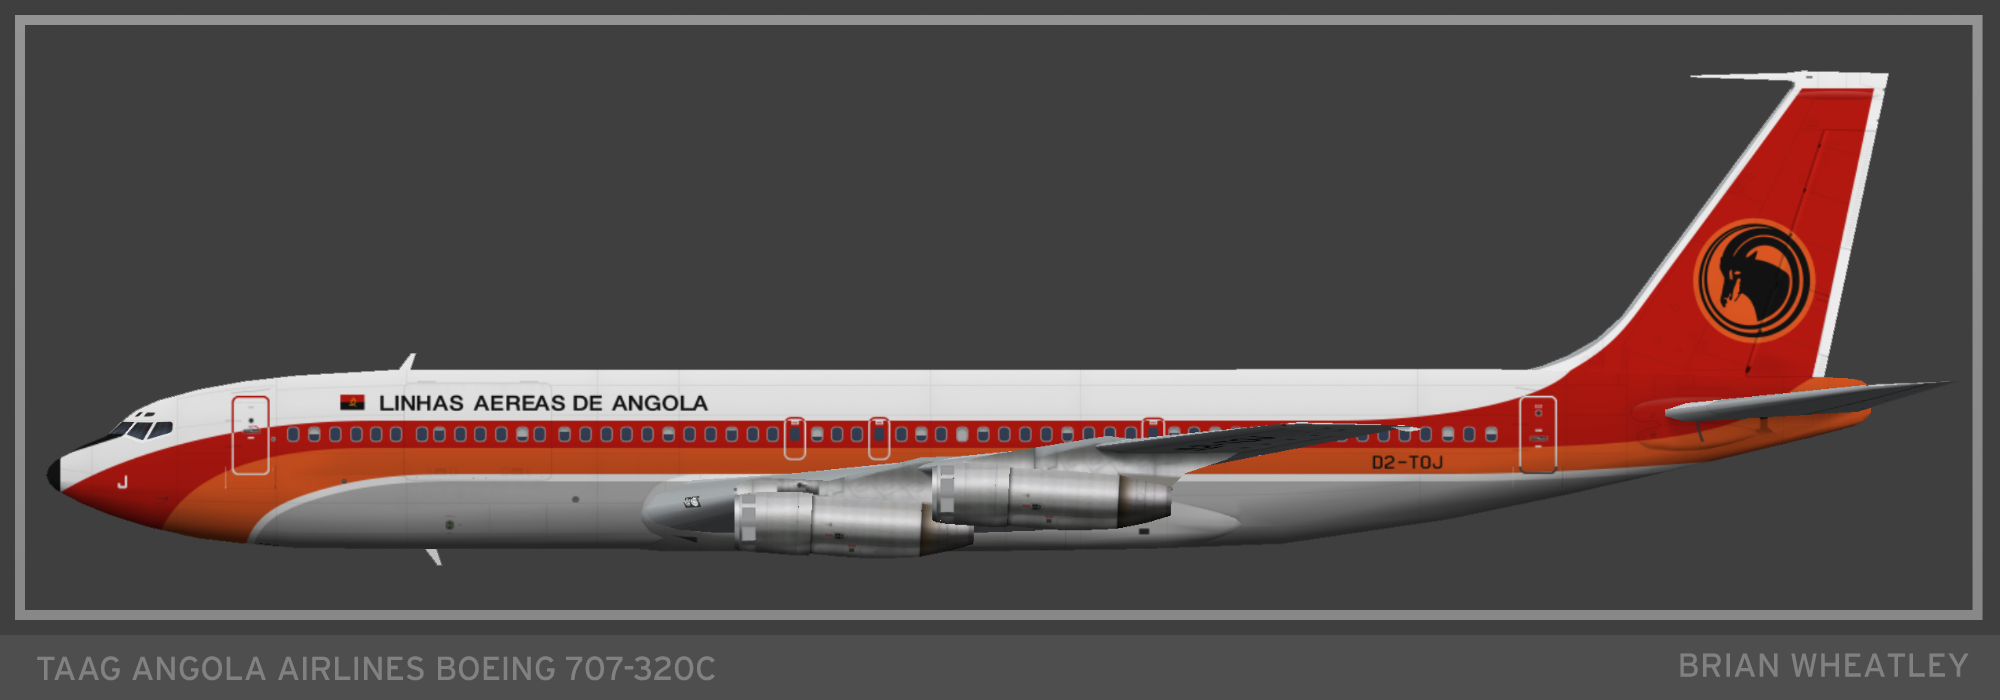 brw_b70c_taagangolaairlines